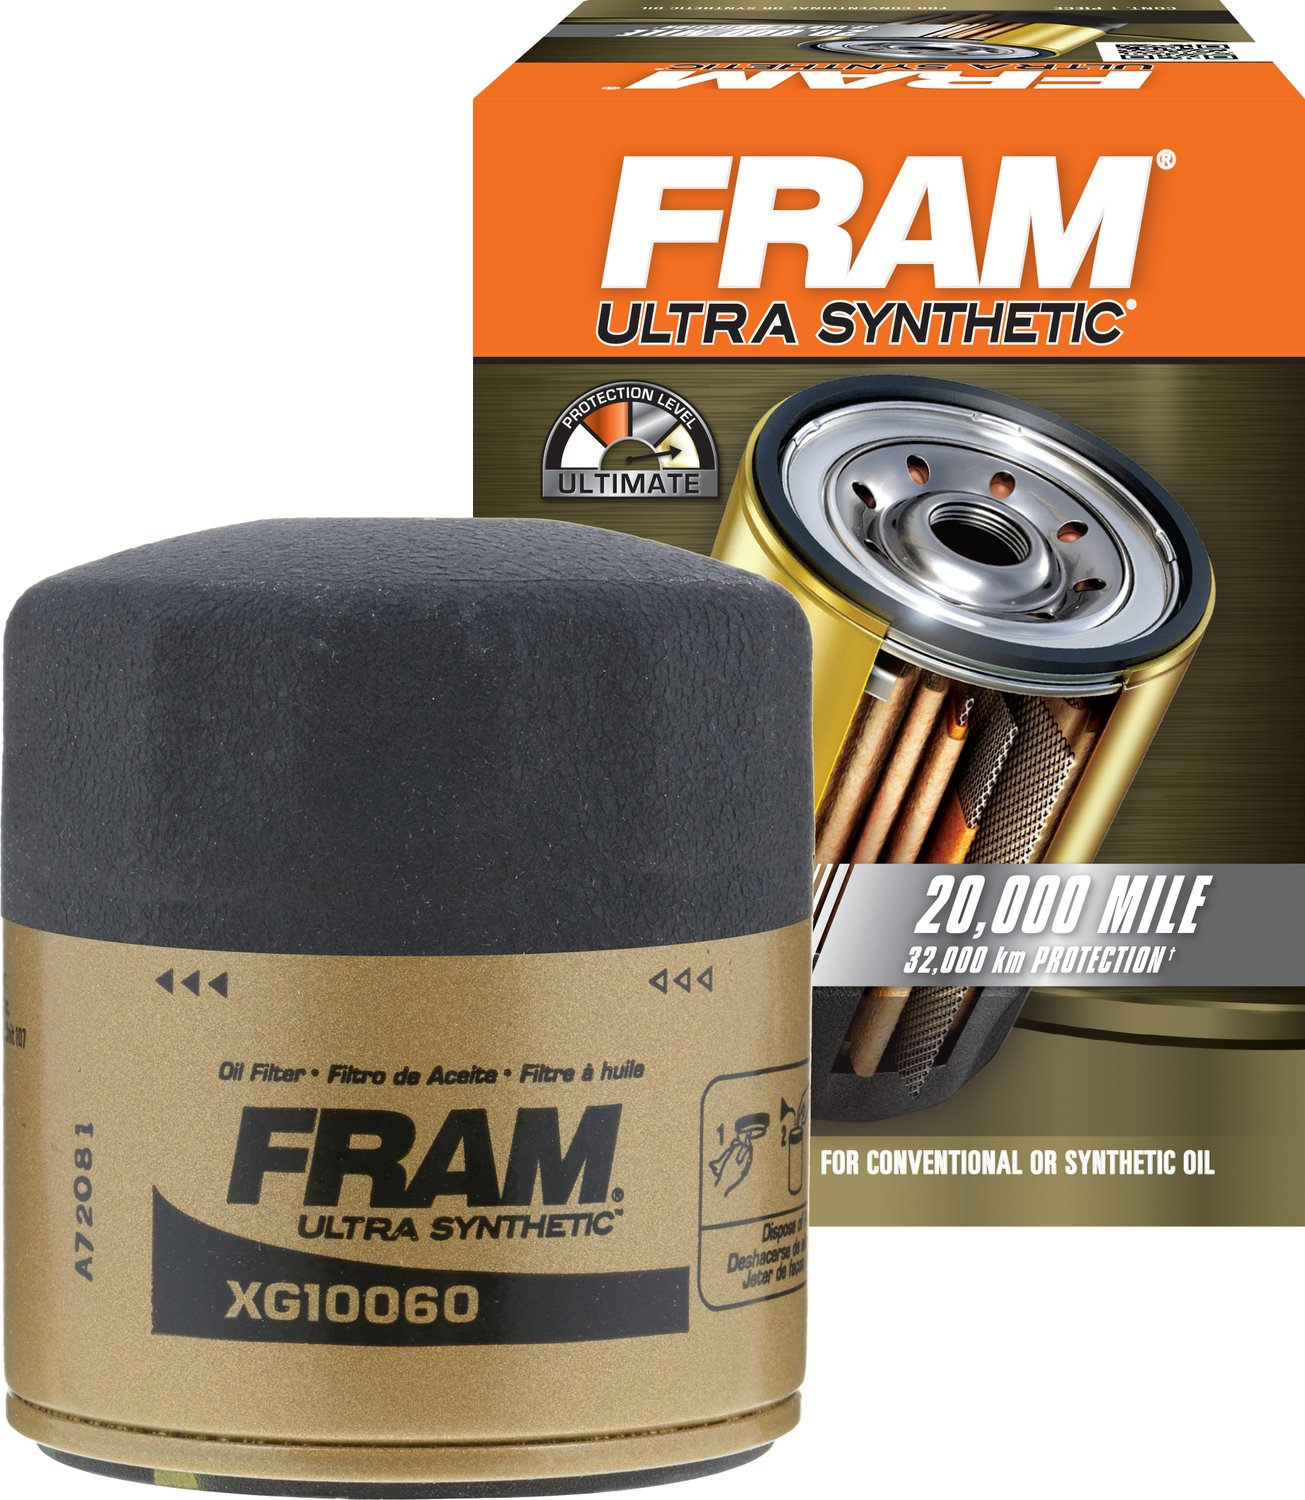 FRAM XG10060 Ultra Synthetic Spin-On Oil Filter with Sure Grip XG10060FTA